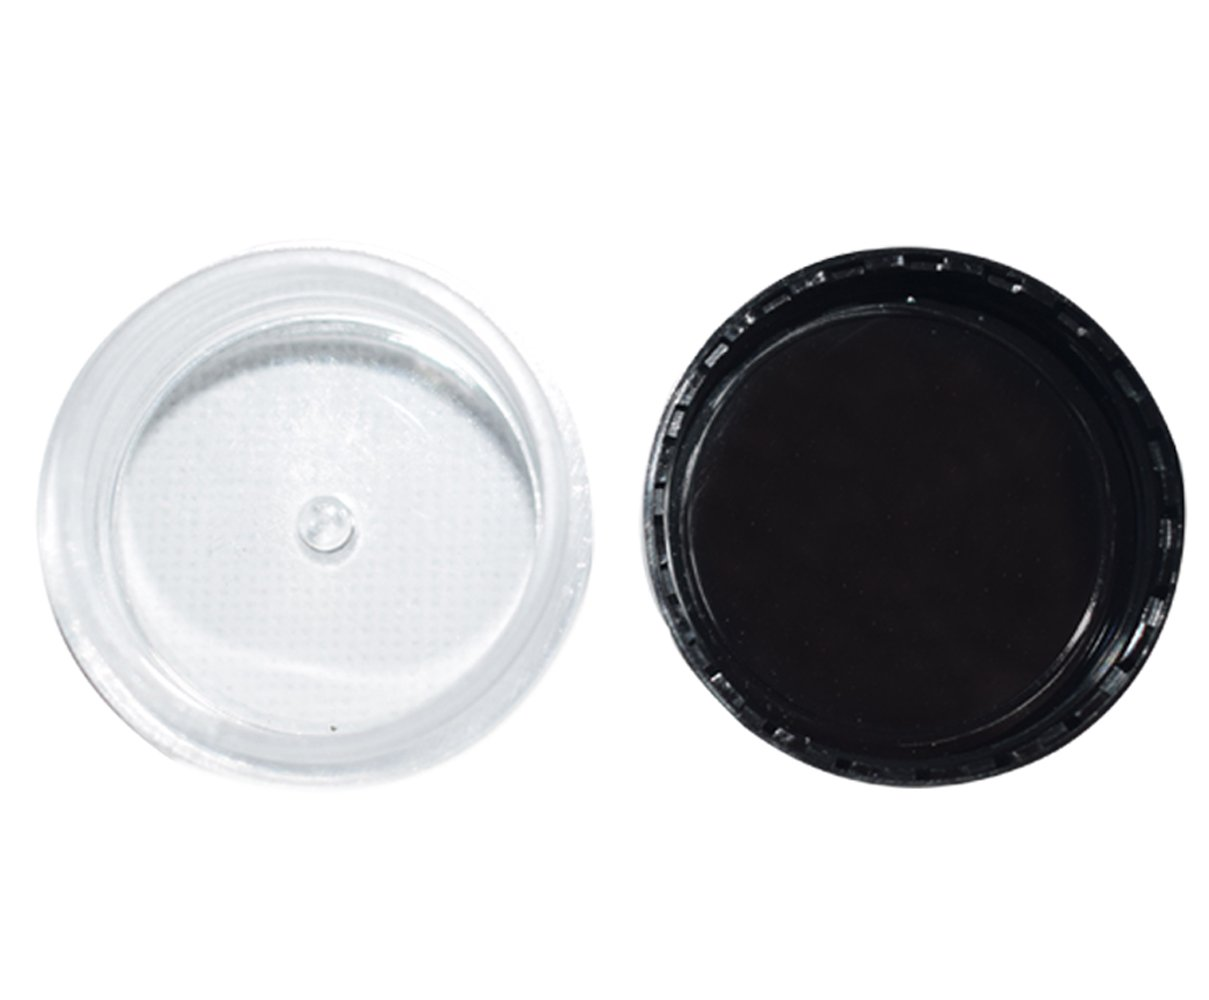 Bekith 108 set Clear Empty 5 Gram/5ML Plastic Pot Jars, BPA Free Cosmetic Sample Empty Container, Black Screw Cap Lid, for Make Up, Eye Shadow, Nails, Powder, Paint, Jewelry by Bekith (Image #5)